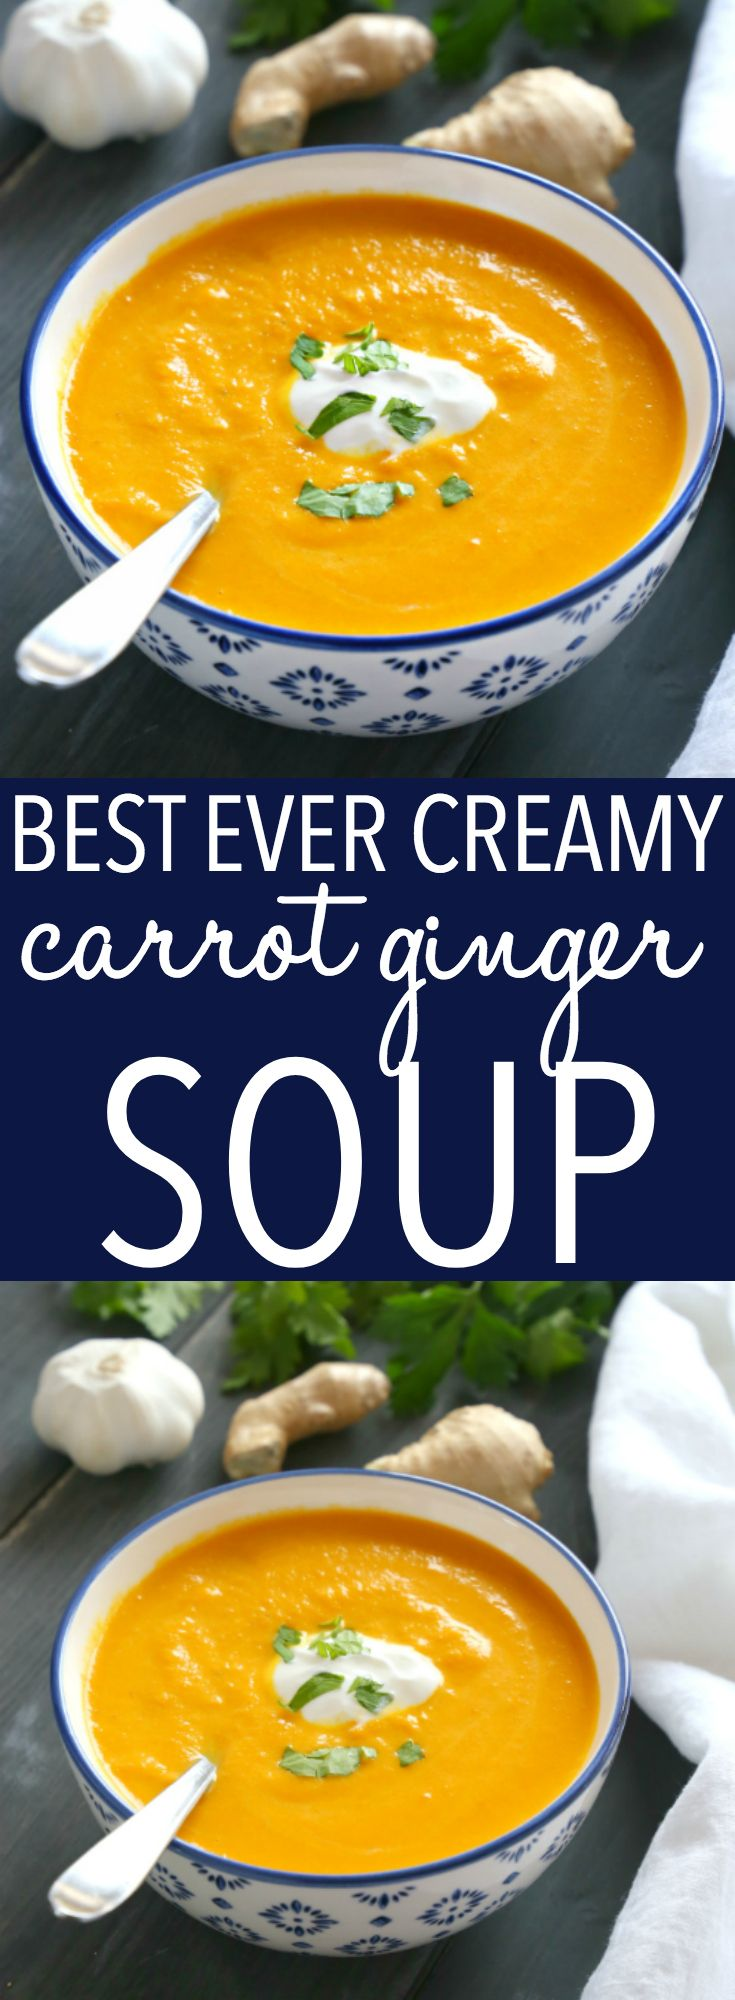 Best Ever Creamy Carrot Ginger Soup - The Busy Baker